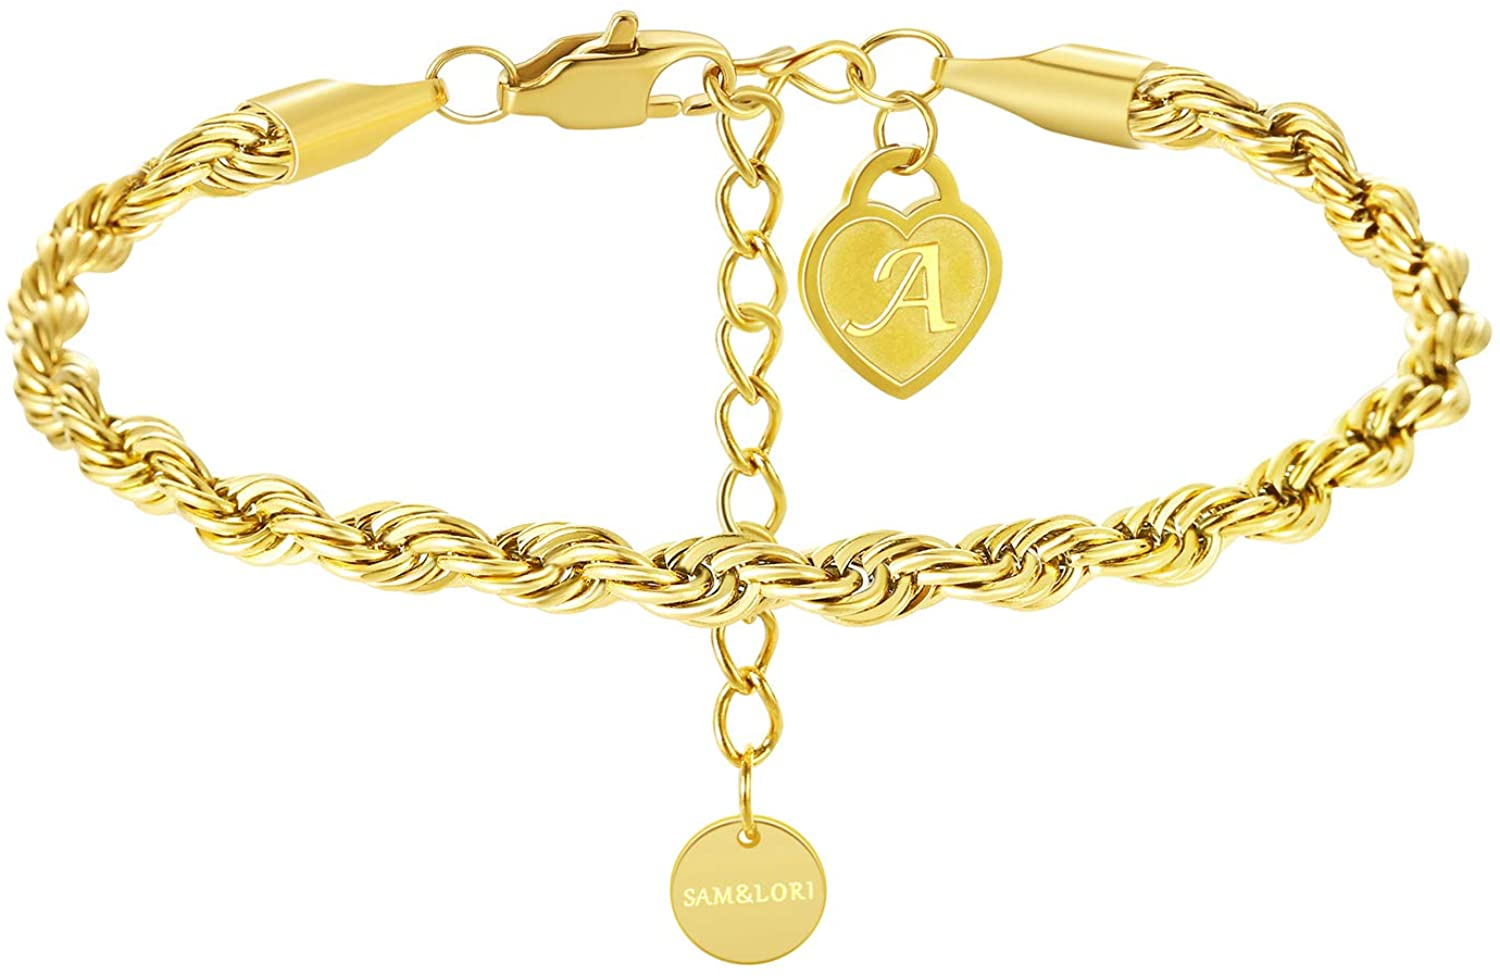 SAM & LORI Twist Rope Chain Initial Bracelet in 18K Gold Plated Cuban Chain Alphabet Charm Bracelet Dainty Layering Stacking Link Cable Monogram Bracelet Bangle Jewelry for Women Her Teen Girls Kids